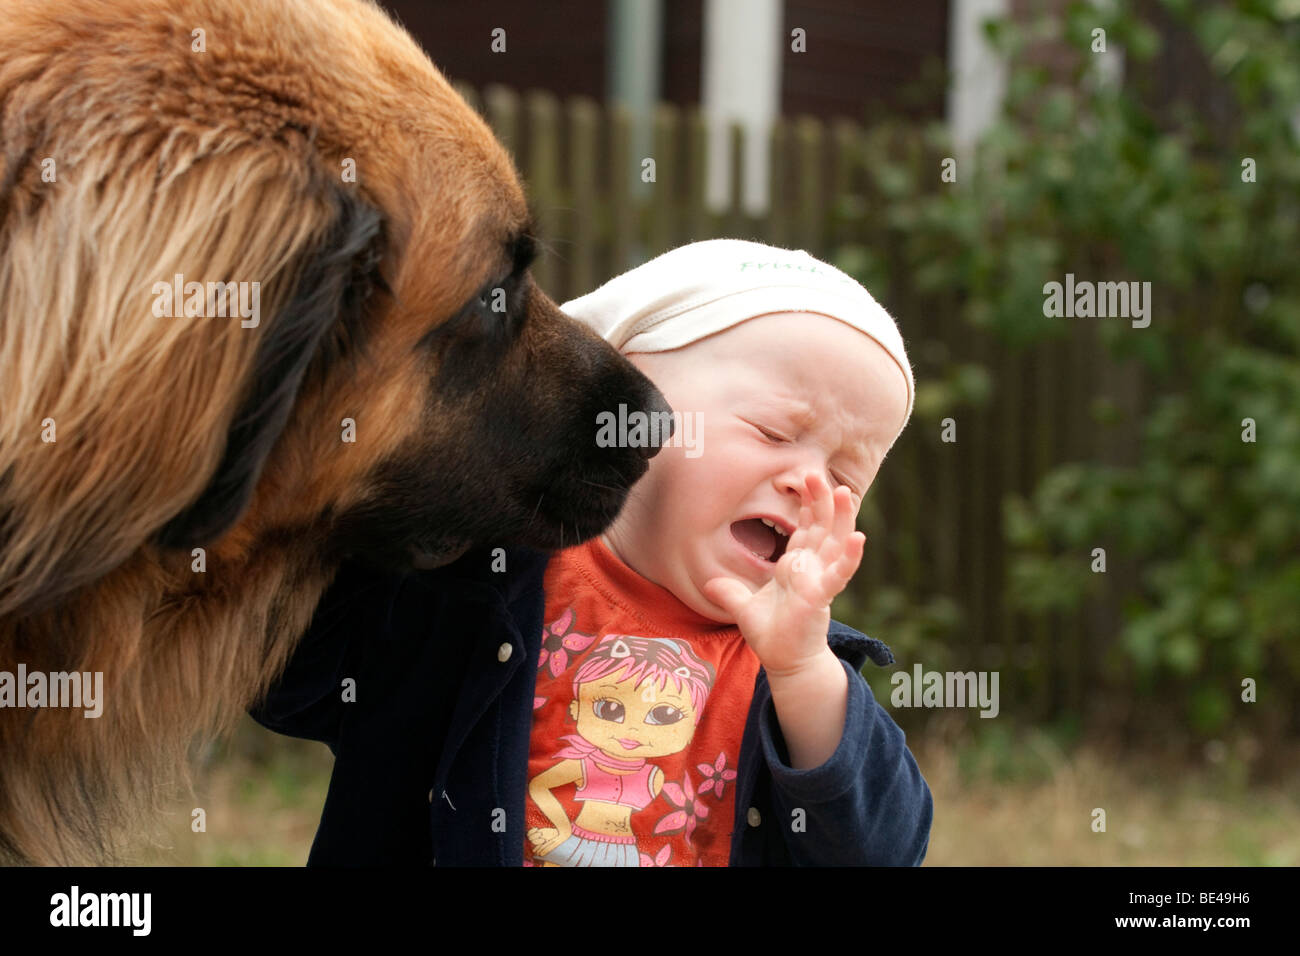 Leonberger sniffing an infant, 1, in the face - Stock Image